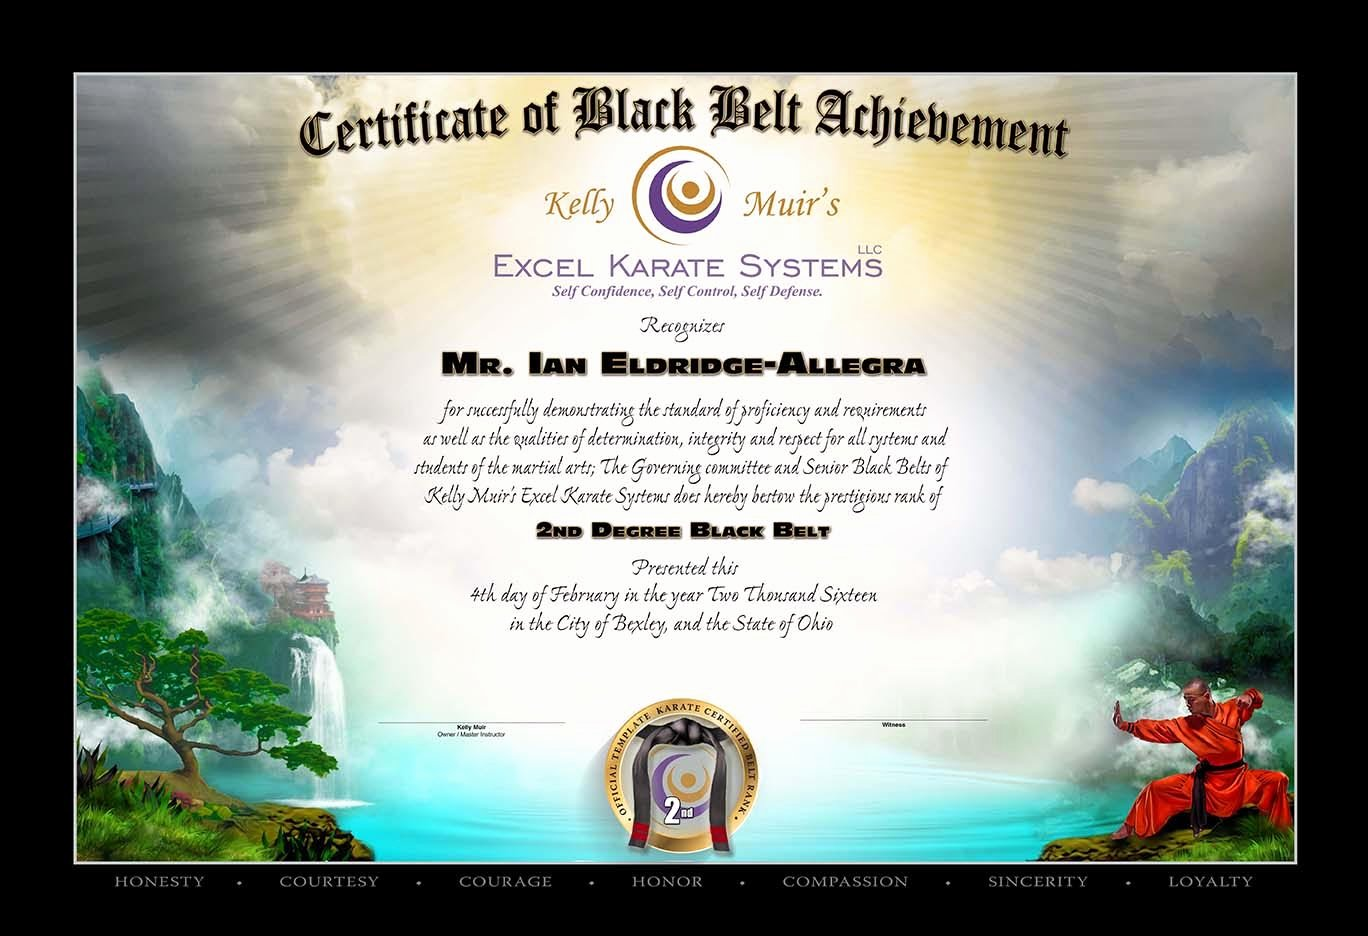 Black Belt Certificate Template Best Of Kelly Muir S Excel Karate Black Belt Testing Feb 4